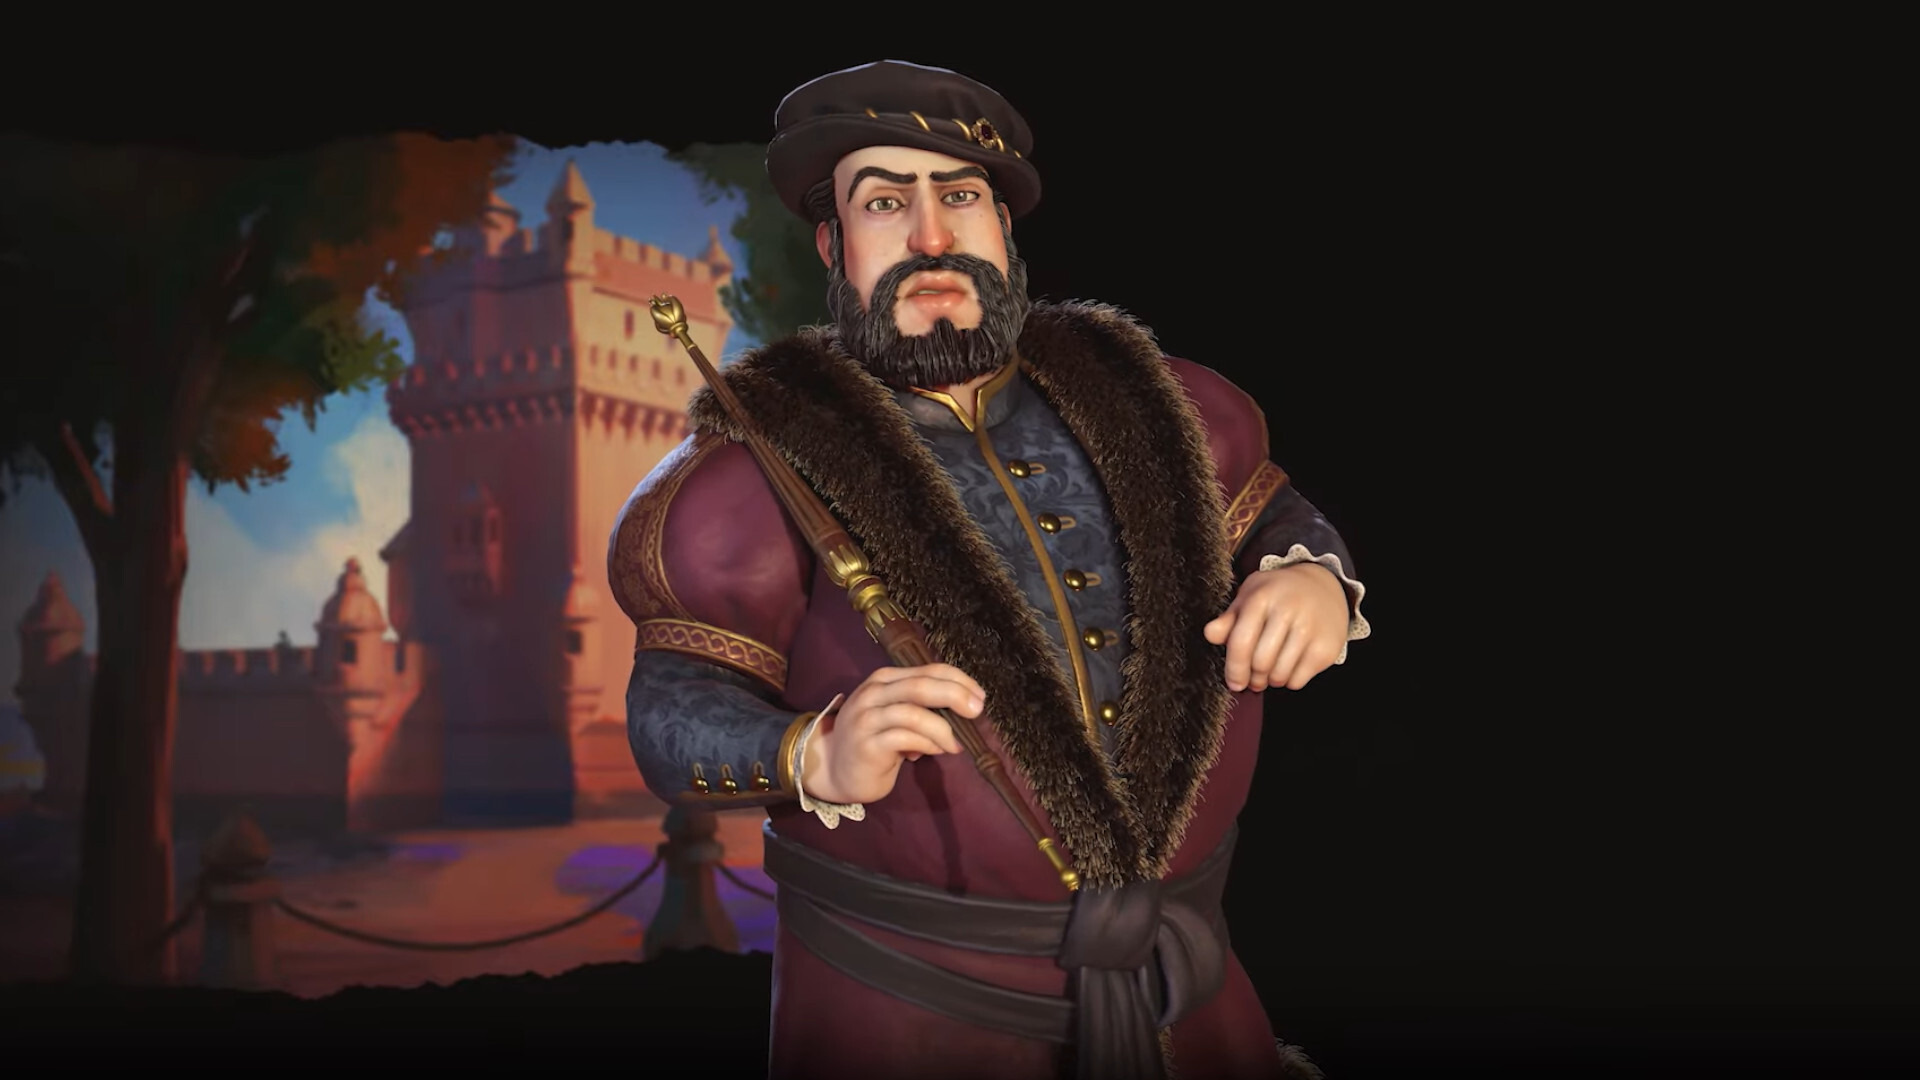 Civ 6's Portugal DLC pack is out now